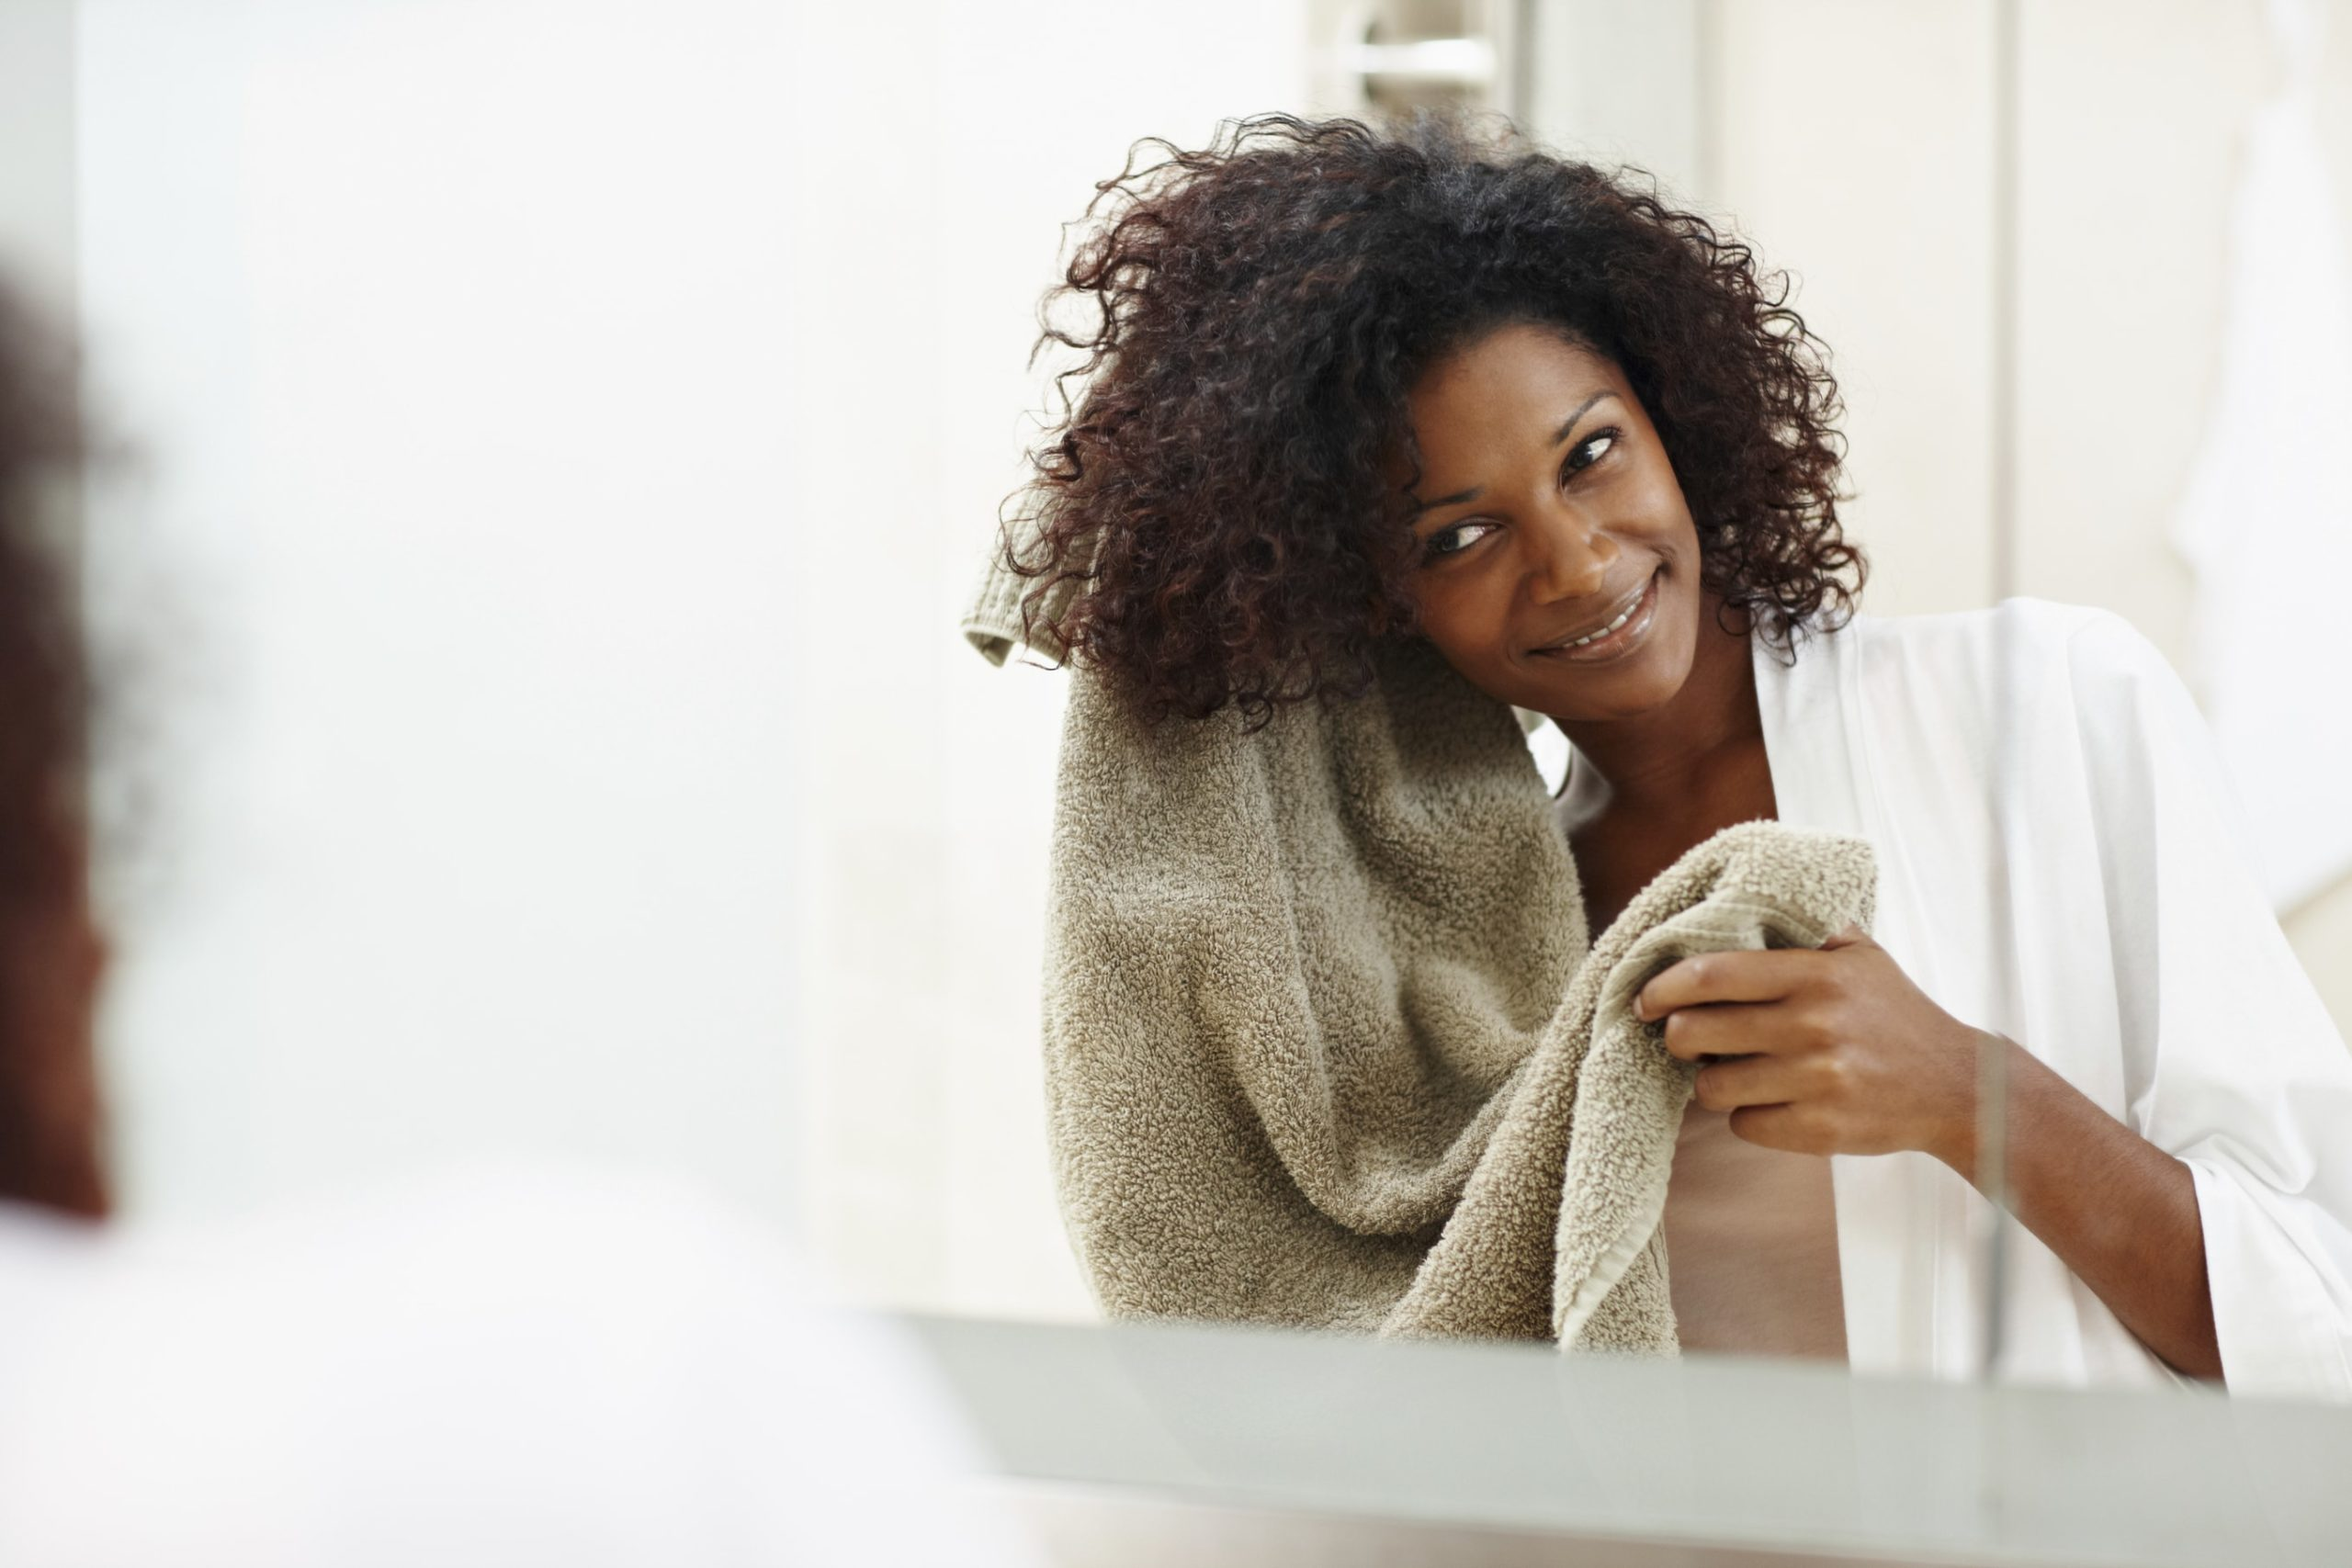 https://www.hairadvisor.co/wp-content/uploads/2020/01/black-woman-washing-hair-istock-20332933-large-min-scaled.jpg